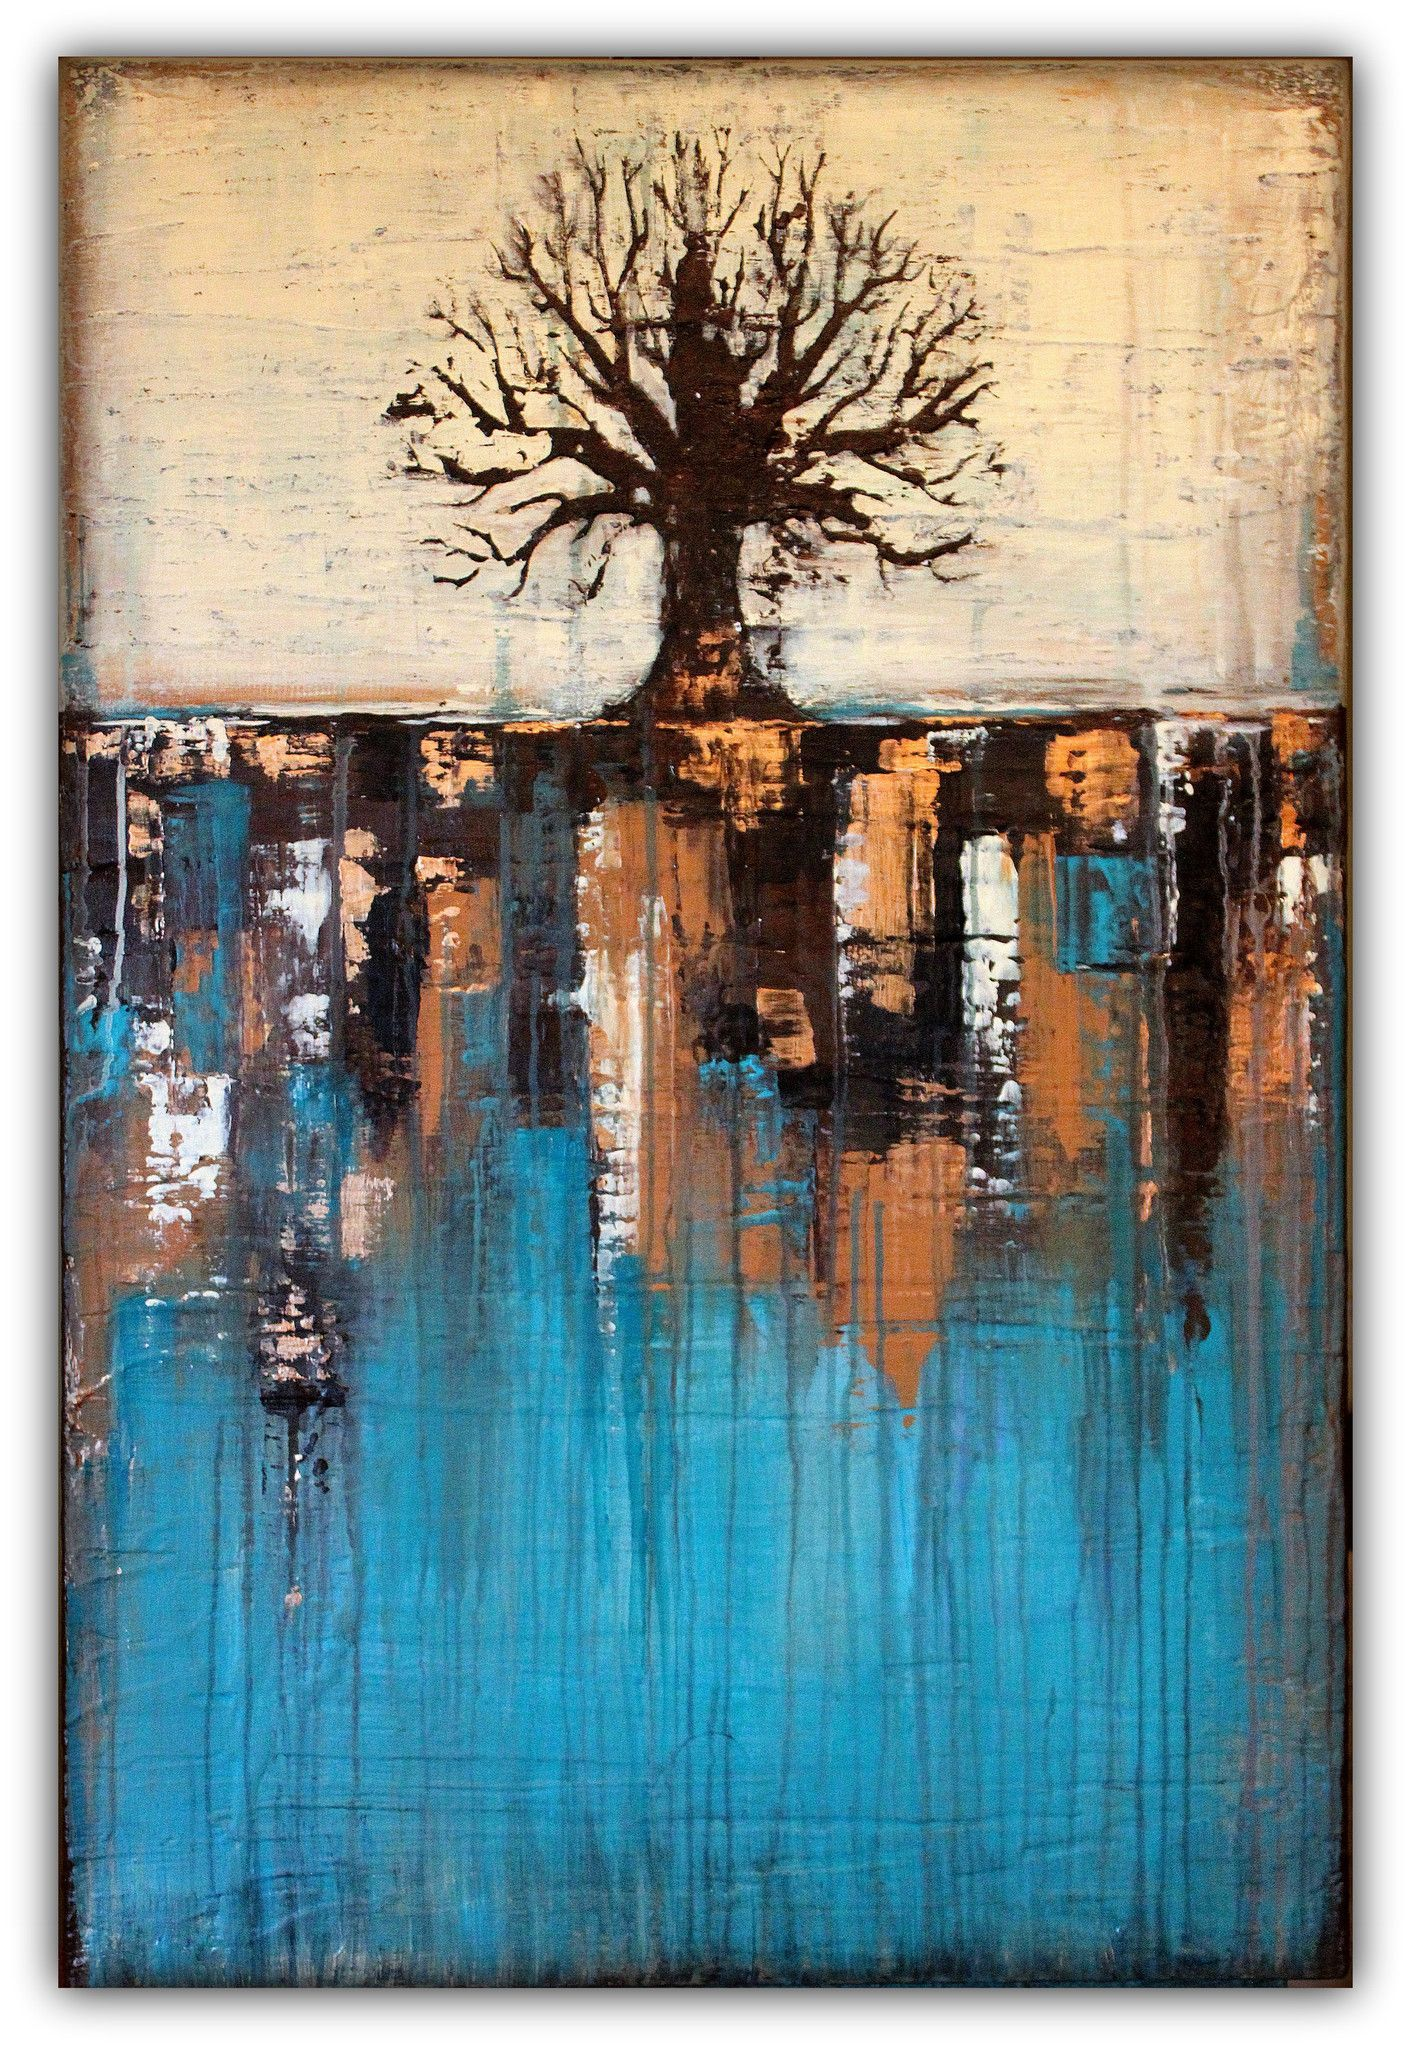 abstract tree in teal landscape � sold grΘup bΘard shop